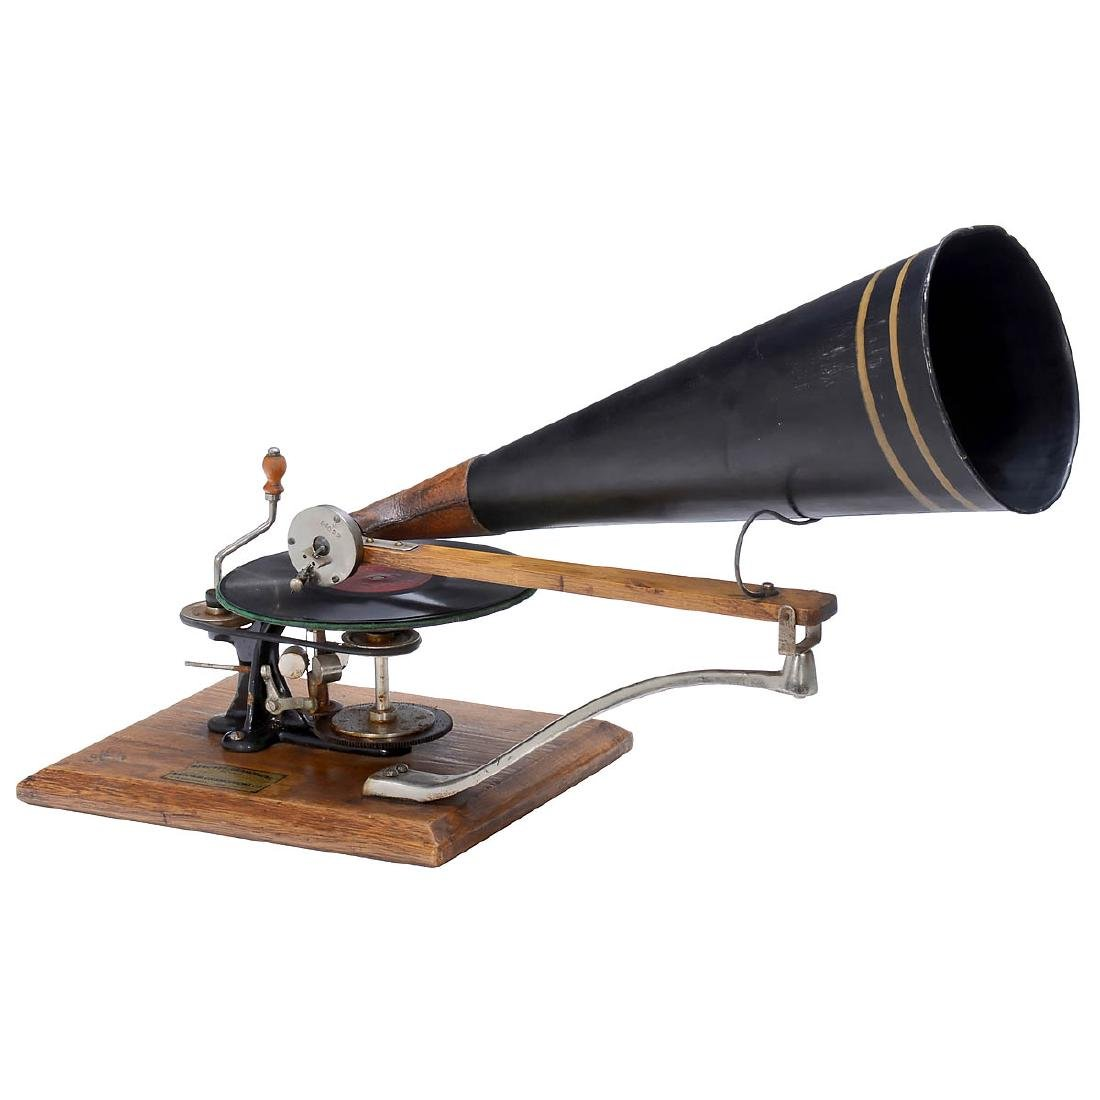 Emile Berliner-Style Hand-Cranked Gramophone